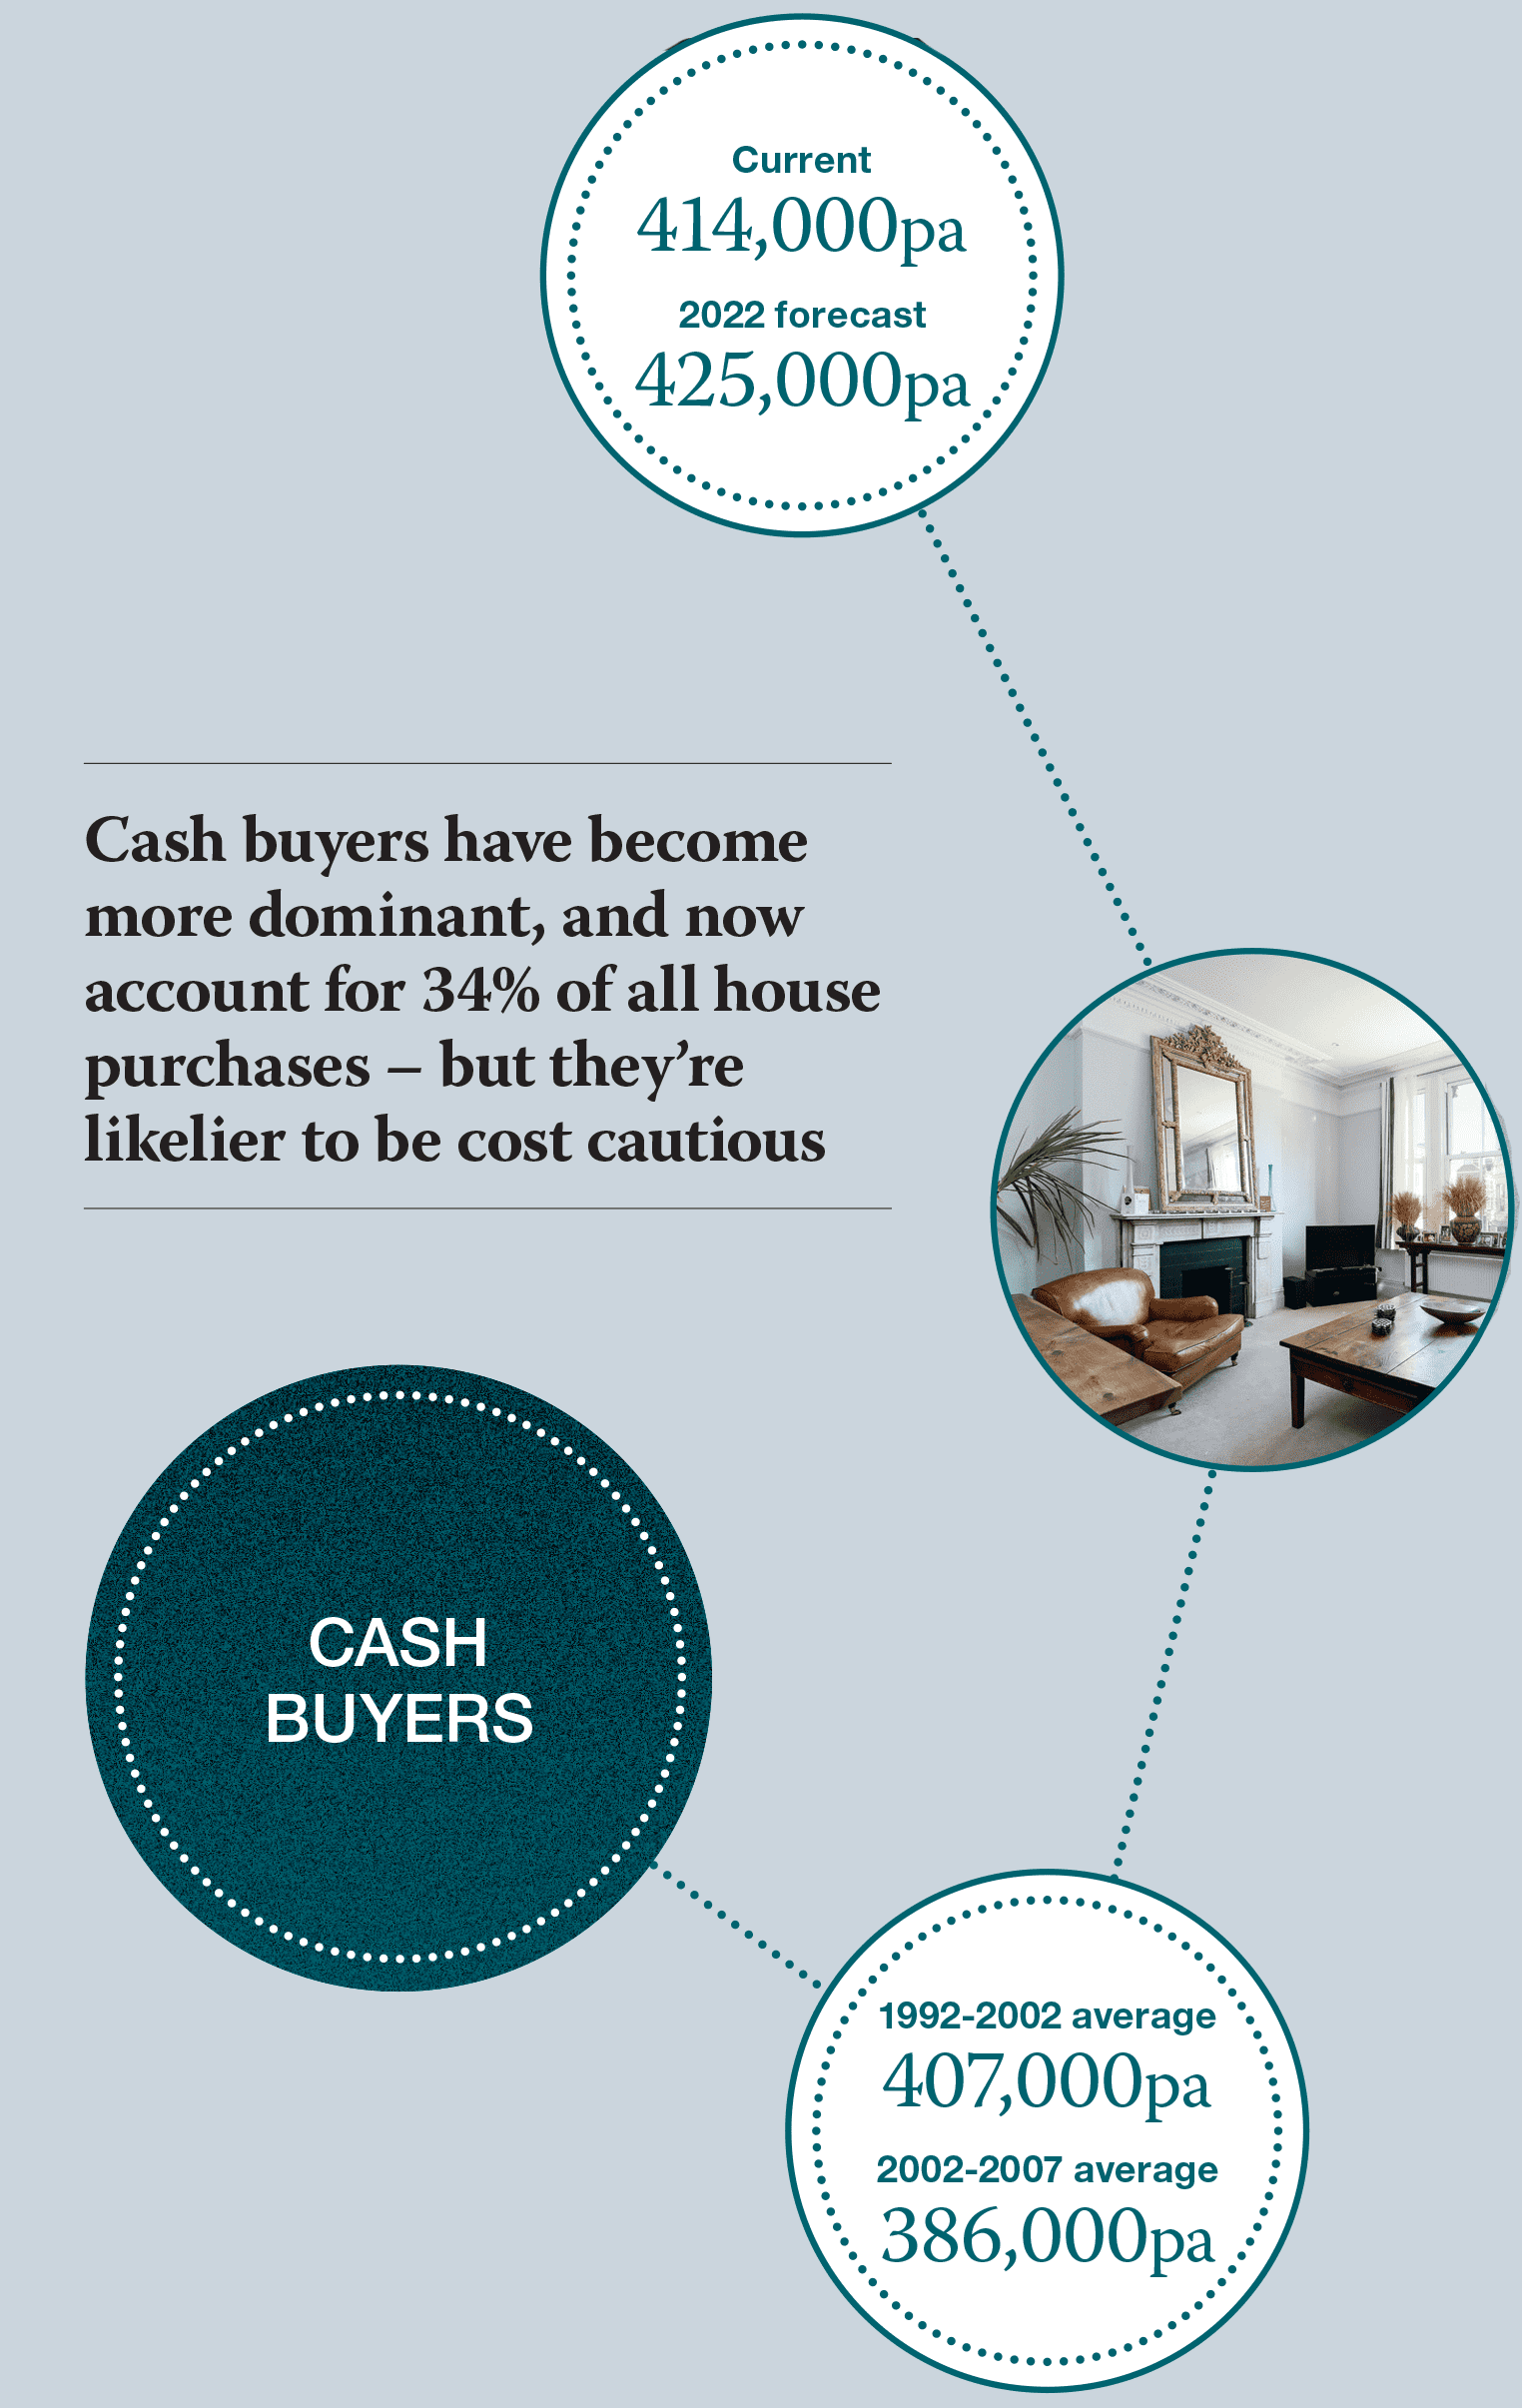 Cash buyers